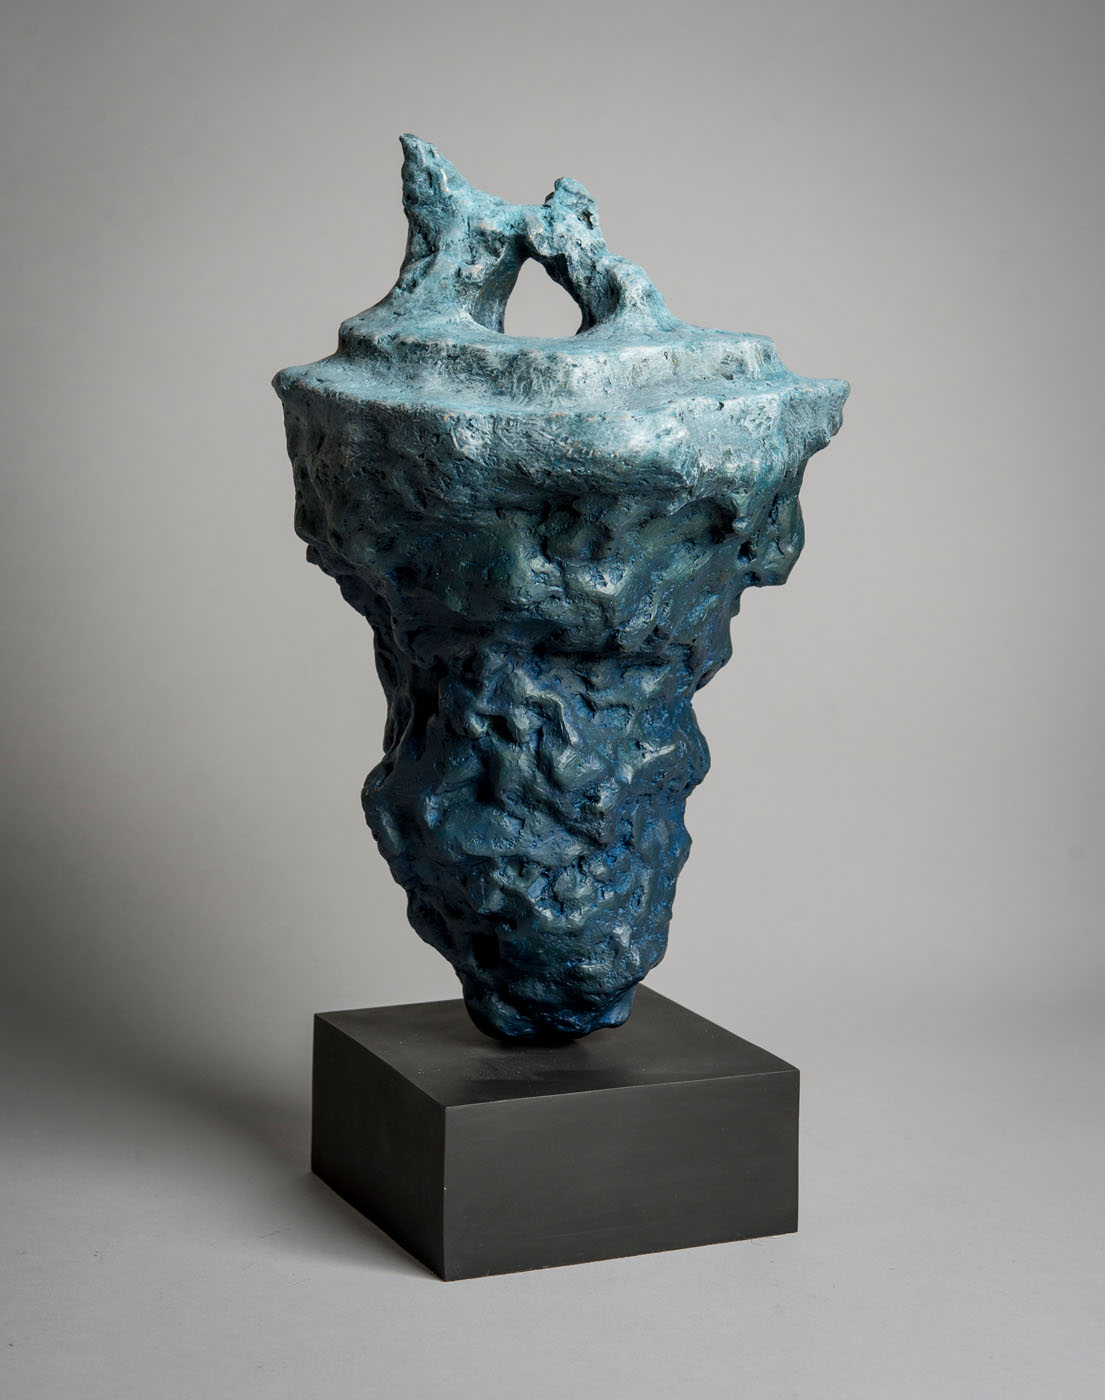 Bronze sculpture of an Iceberg by the artist Anthony Smith